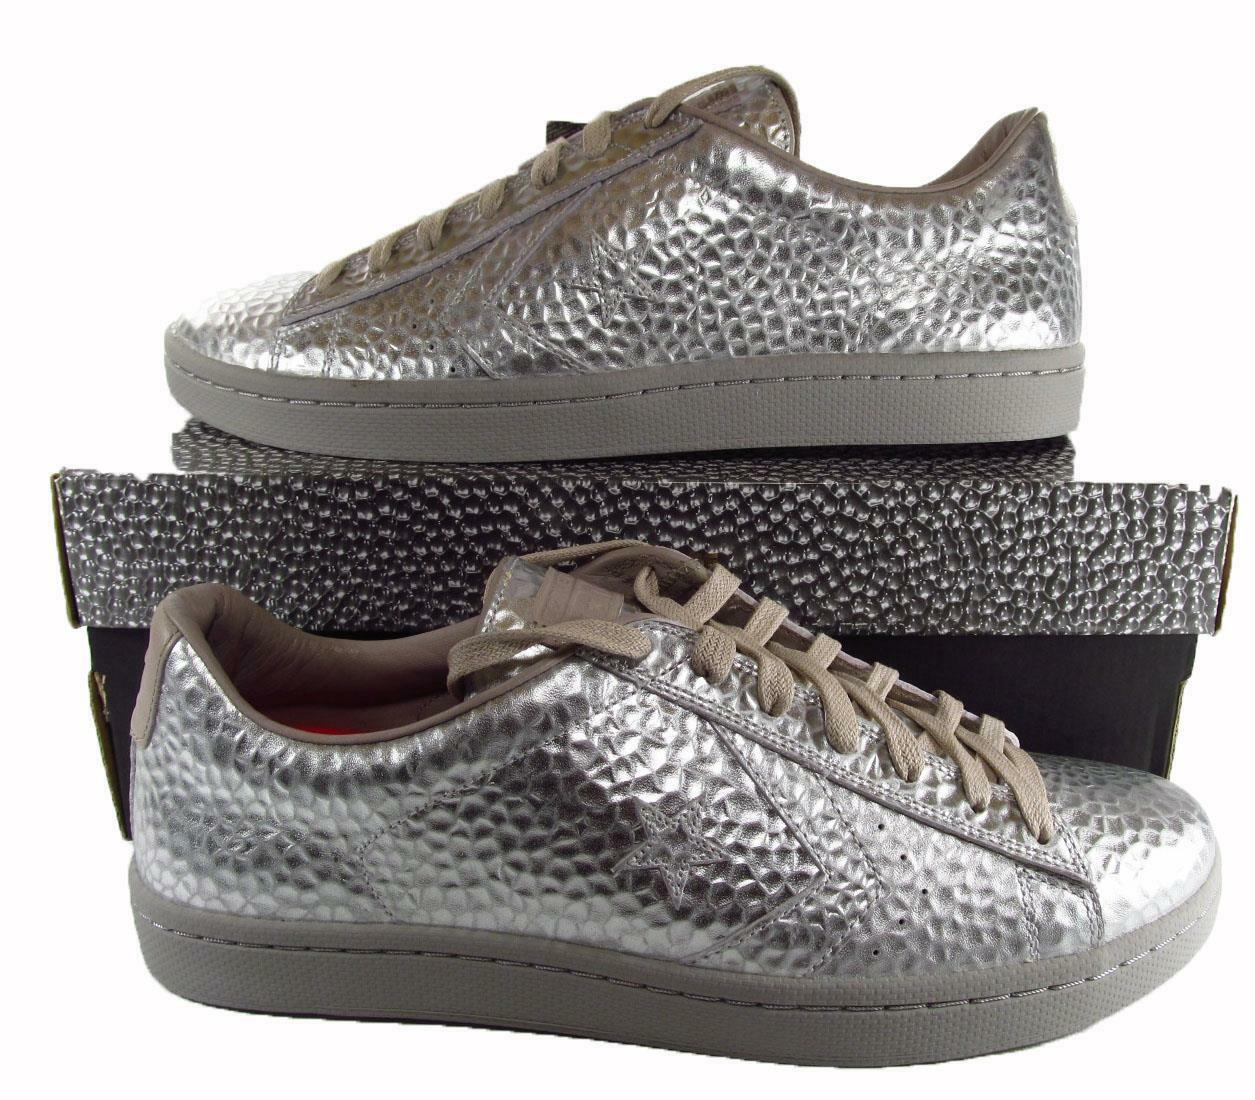 Converse First String String String Cons Pro Pelle Ox Hammered PEWTER Pelle RARE 150837C 22d9bb